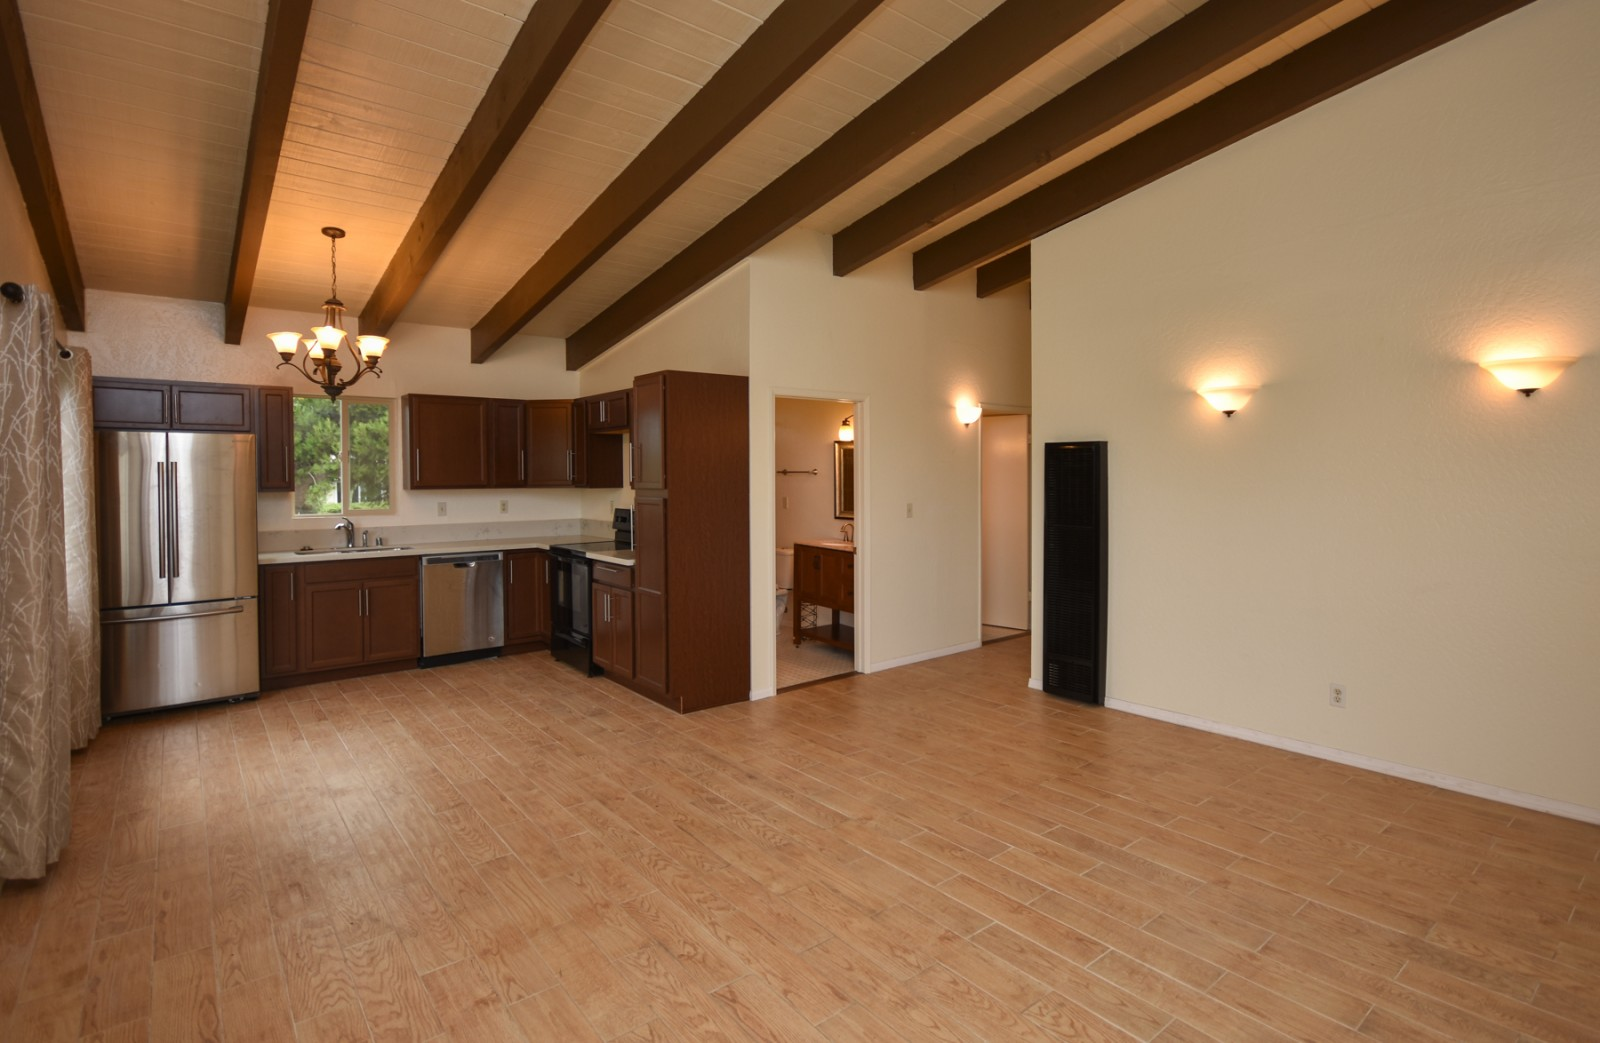 2104 Manchester Ave, Cardiff By The Sea, CA 92007